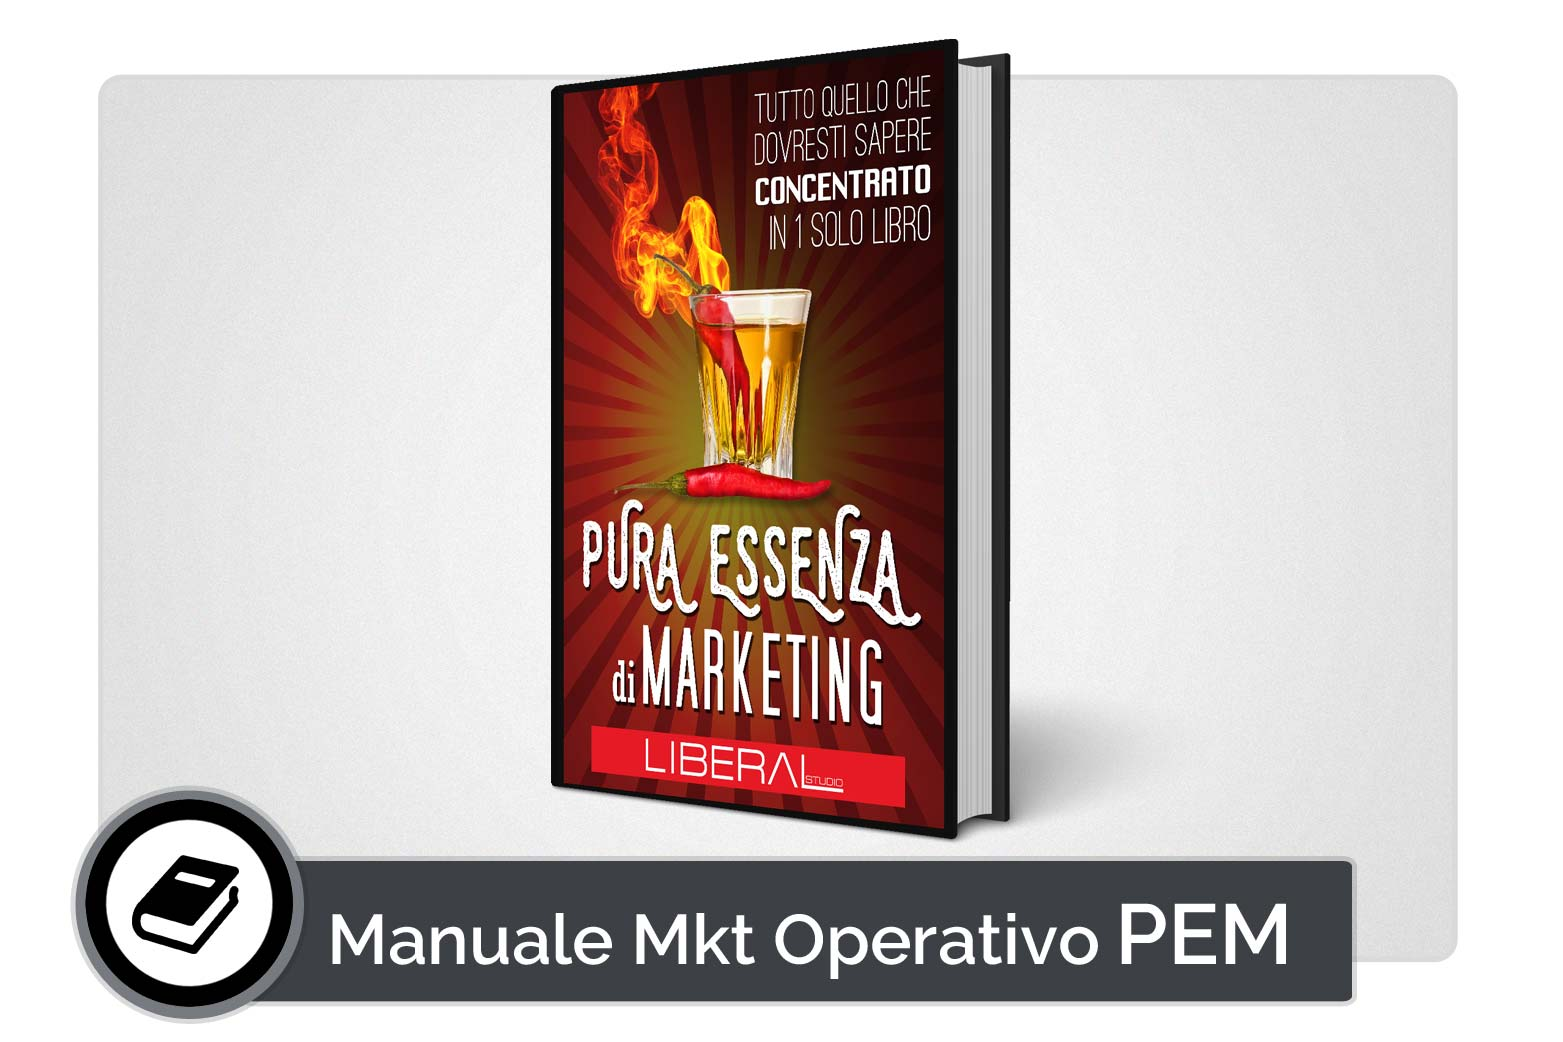 liberal studio infoprodotto libro marketing operativo